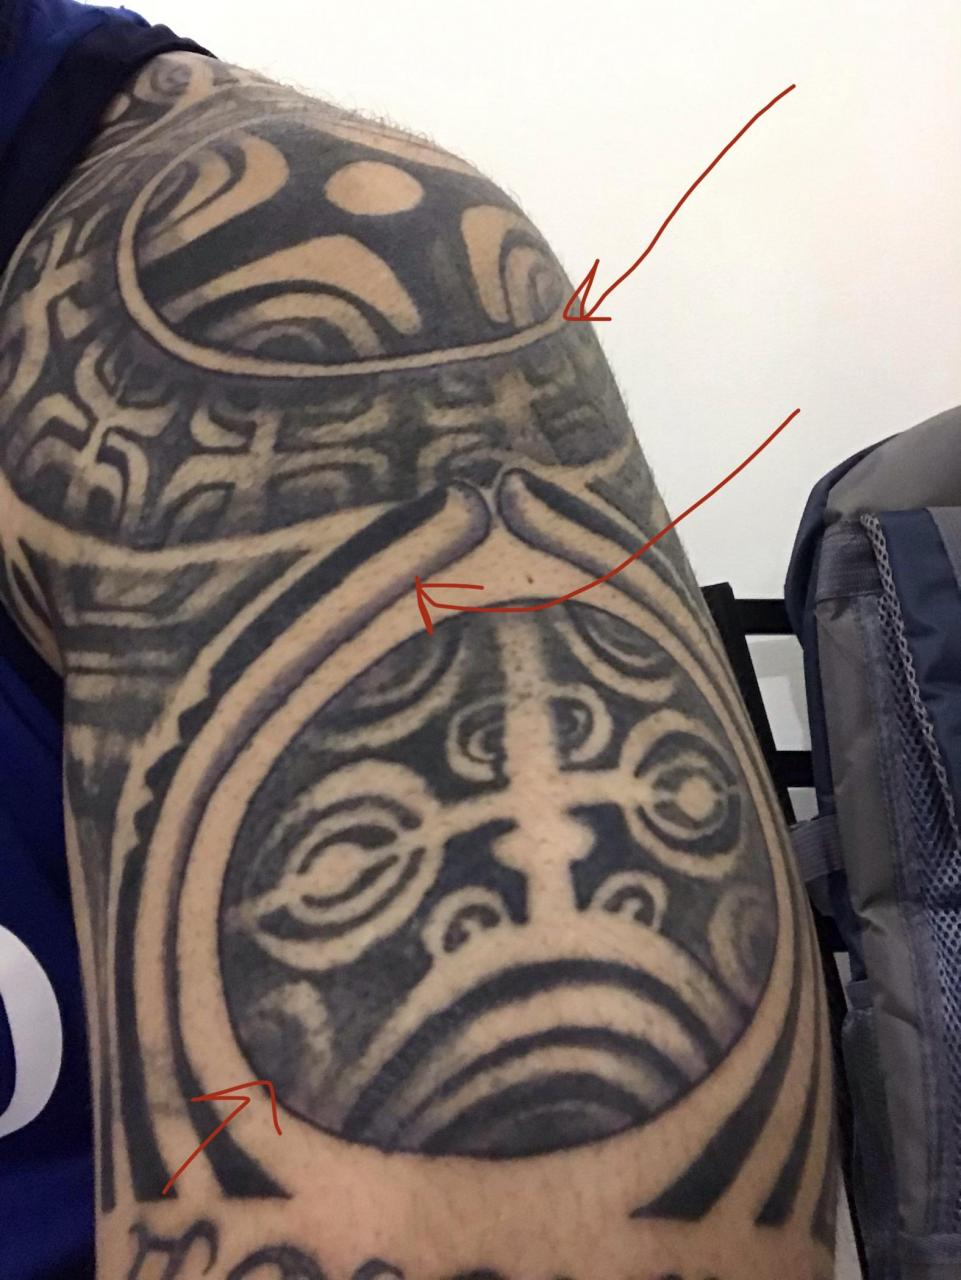 """Is it normal to not sweat as much with """"healed"""" tattoo? I made a post a while back - my tattoo had a hard time healing, doc prescribed meds (betamethasone and dermovate) but now when I work out, seems like my arm doesn't sweat much.. causes?"""